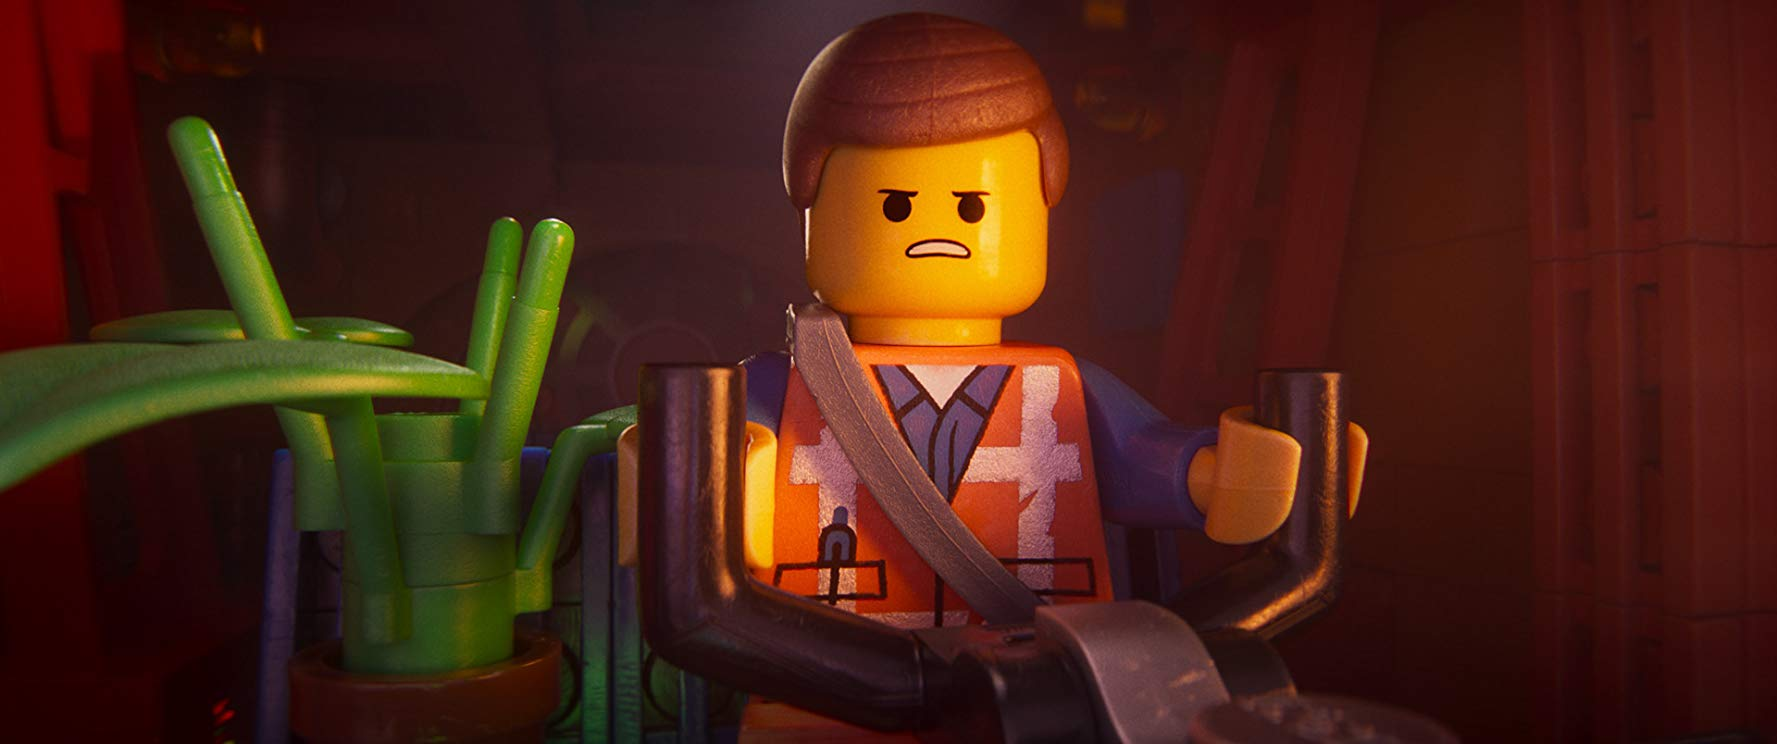 The Lego Movie 2: Una nuova avventura: una scena con Emmet